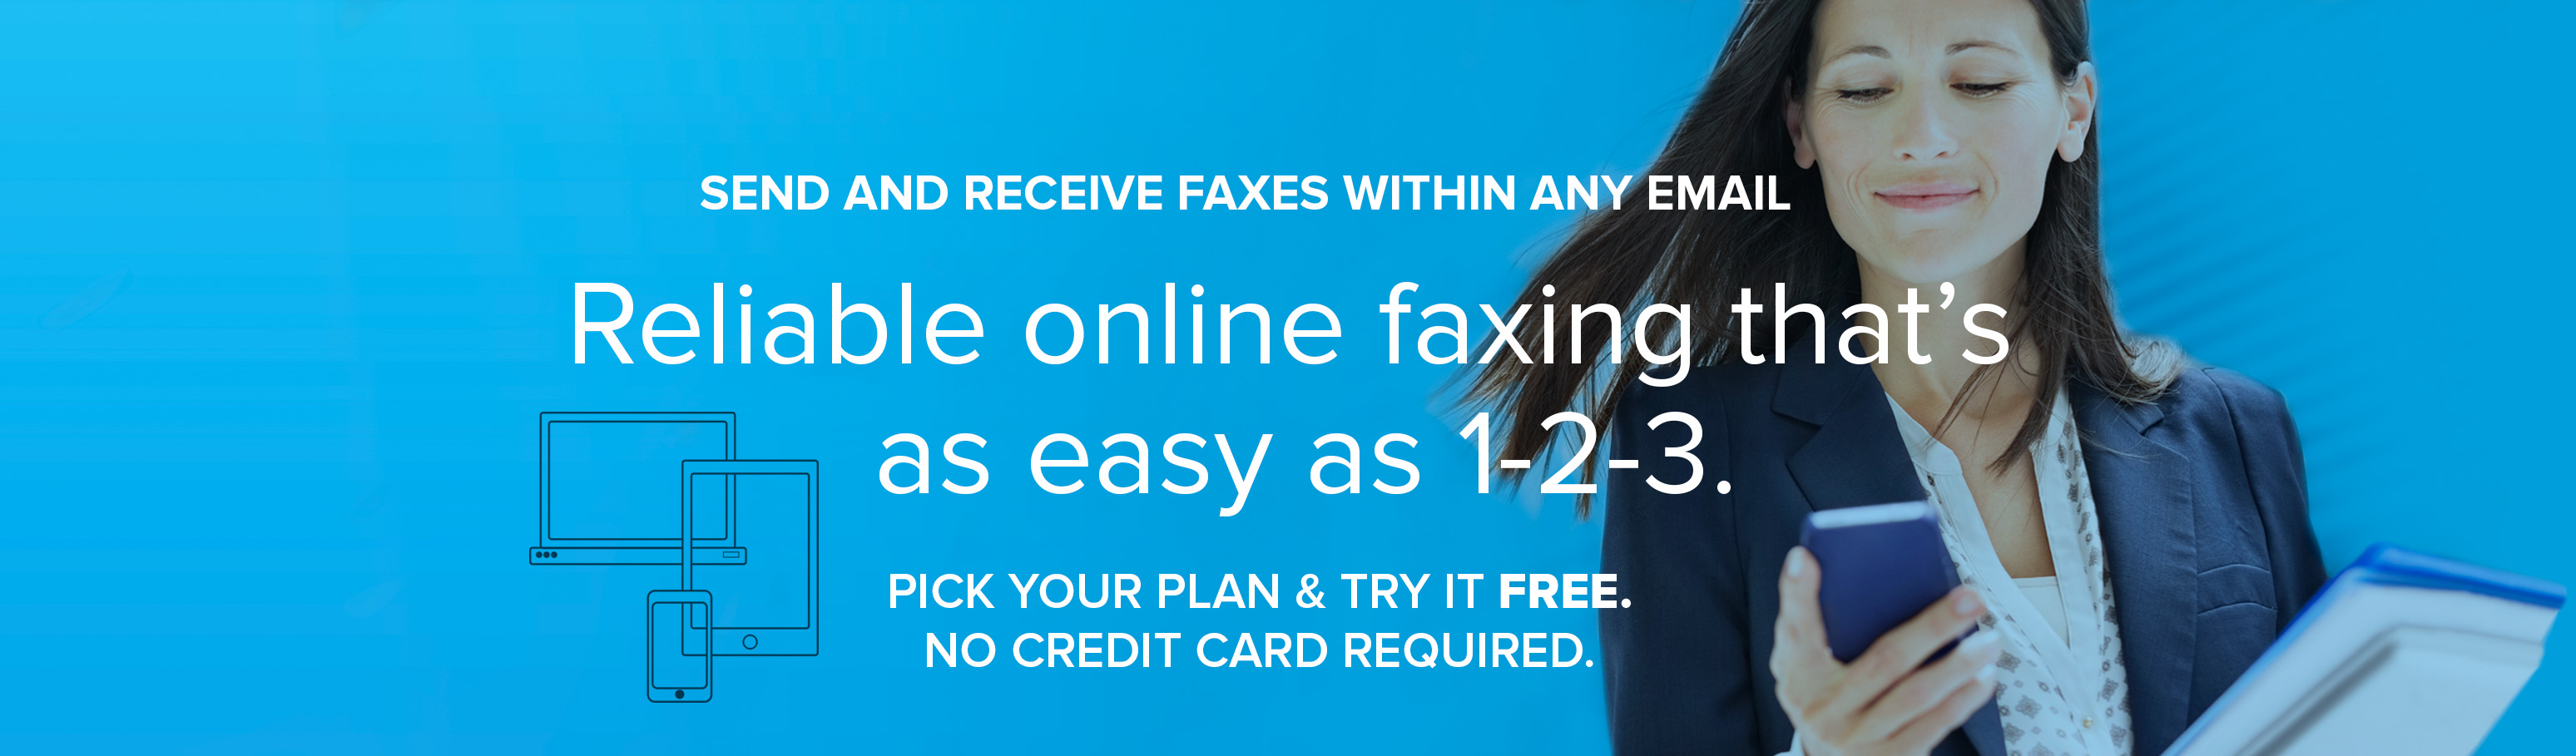 Reliable online faxing that's as easy as 1-2-3.